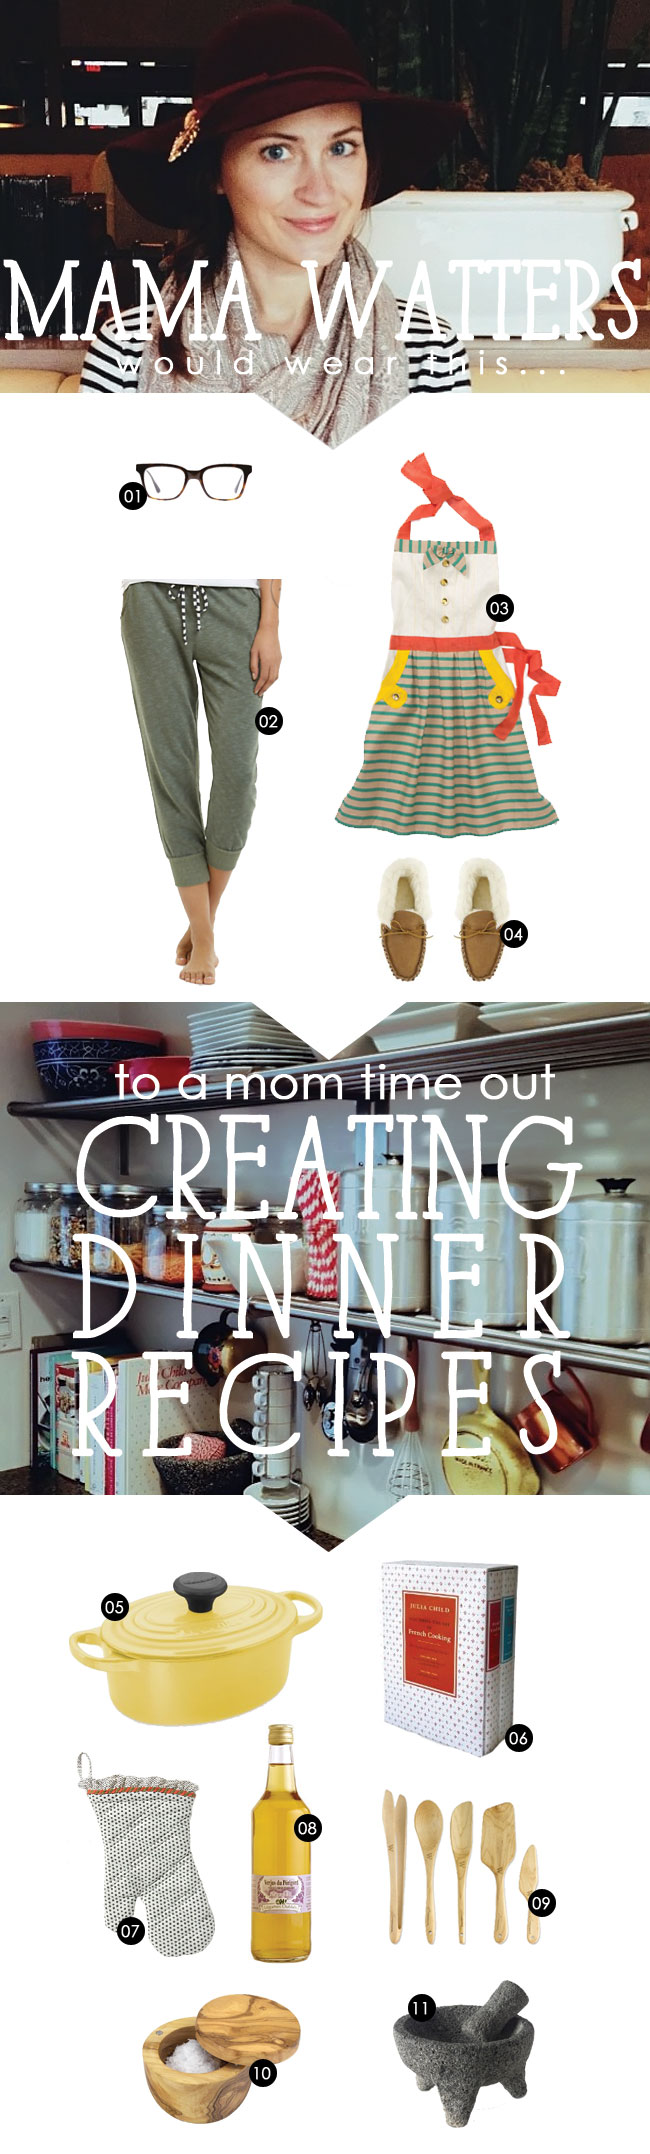 mama watters, its the little things, mom time out, mom break, adult time, mom style, cooking break